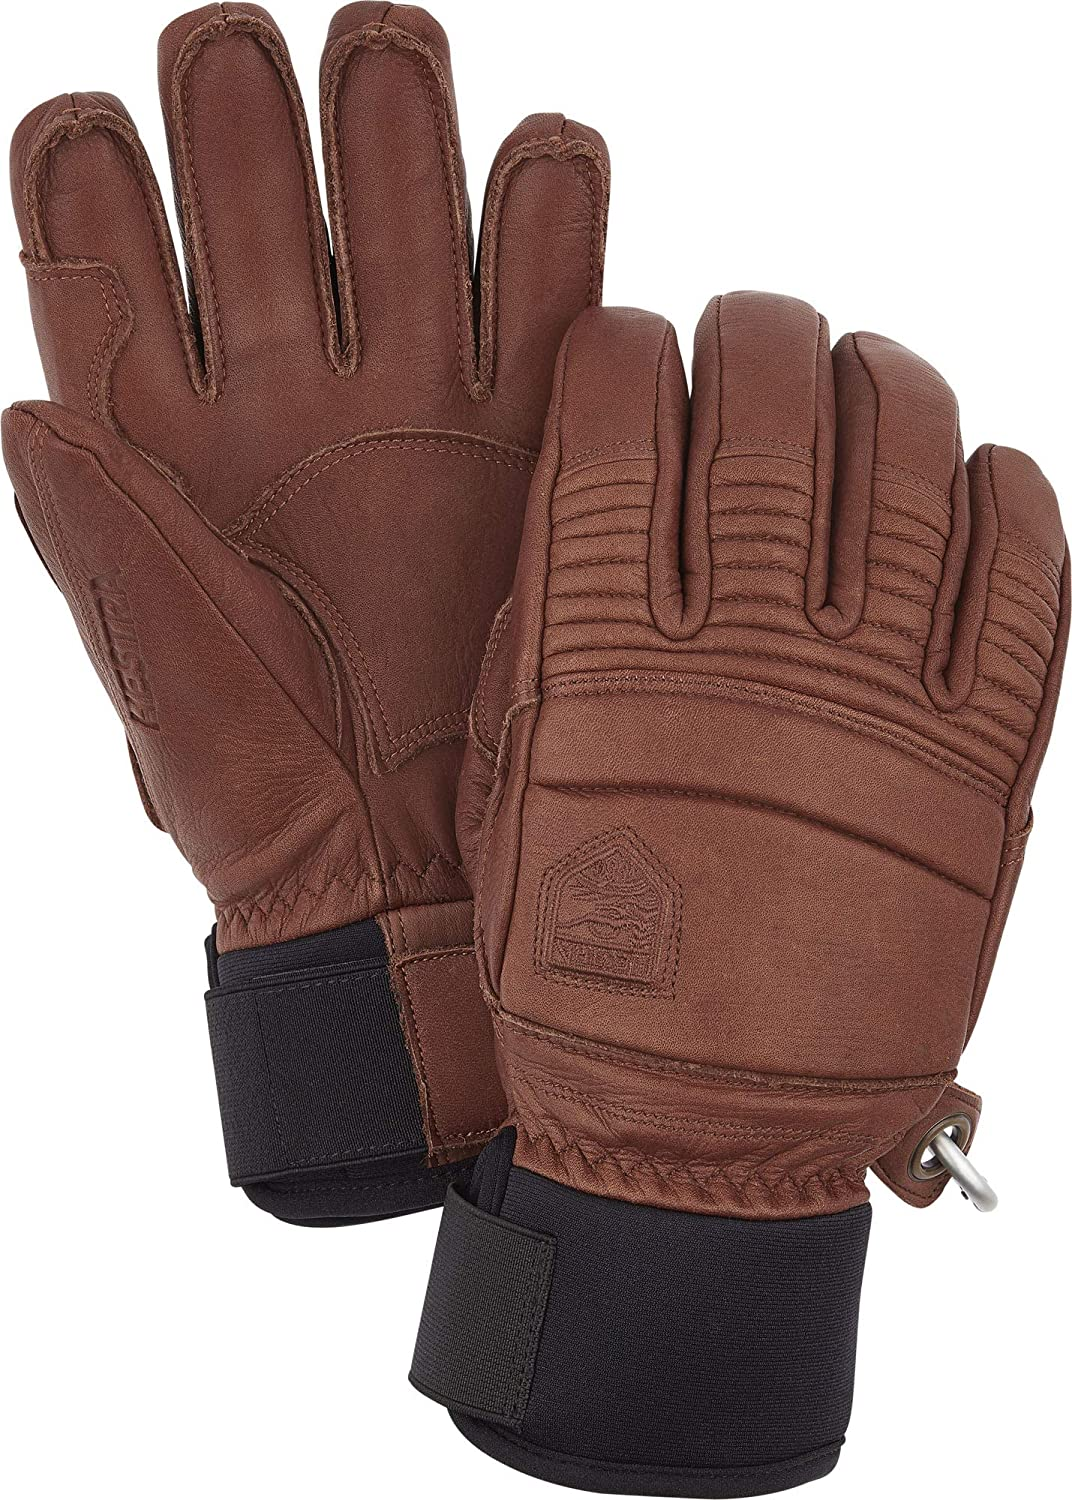 Hestra Leather Fall Line - Short Freeride 5-Finger Snow Glove with Superior Grip for Skiing, Snowboarding and Mountaineering